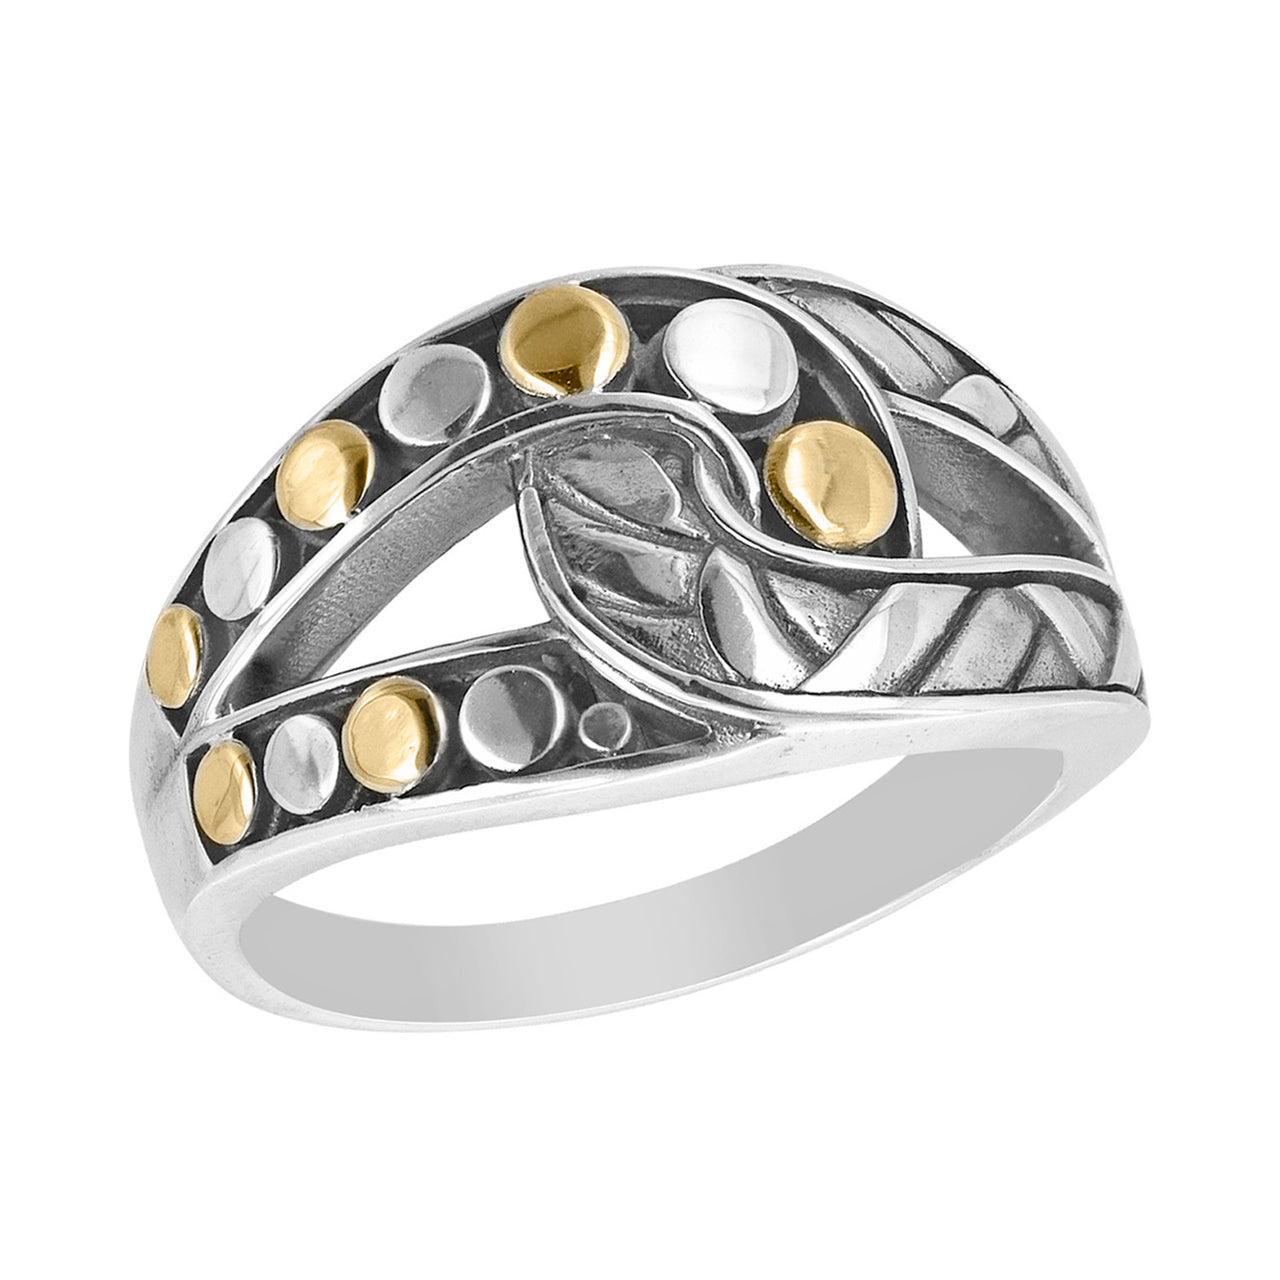 Basket Weave and Dot Patterned Ring with 18k Gold Accents